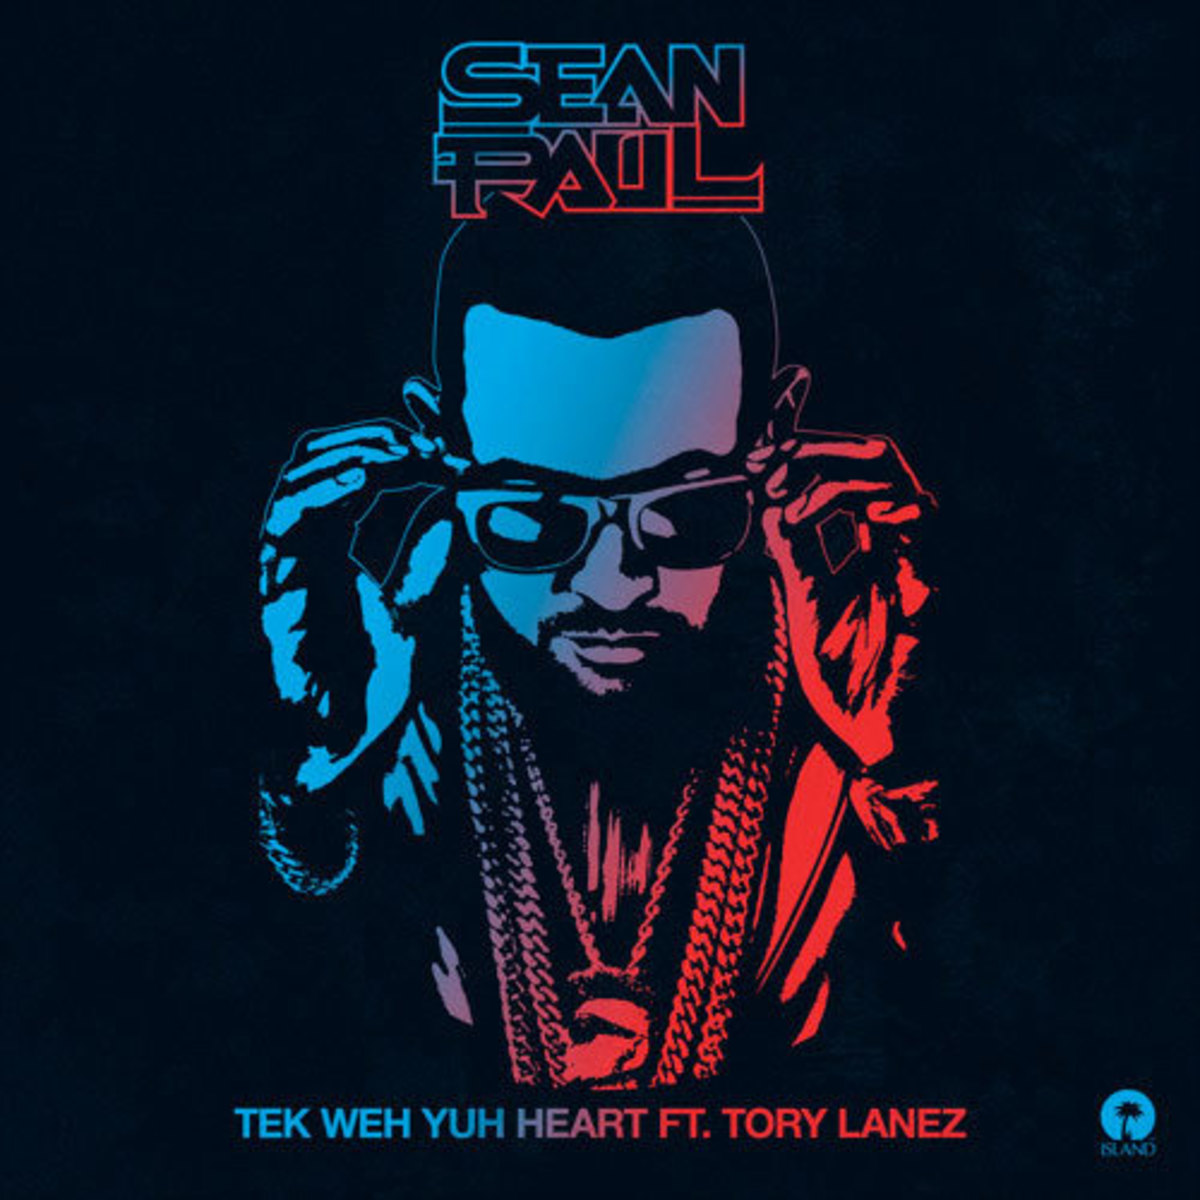 sean-paul-tek-weh-yuh-heart.jpg